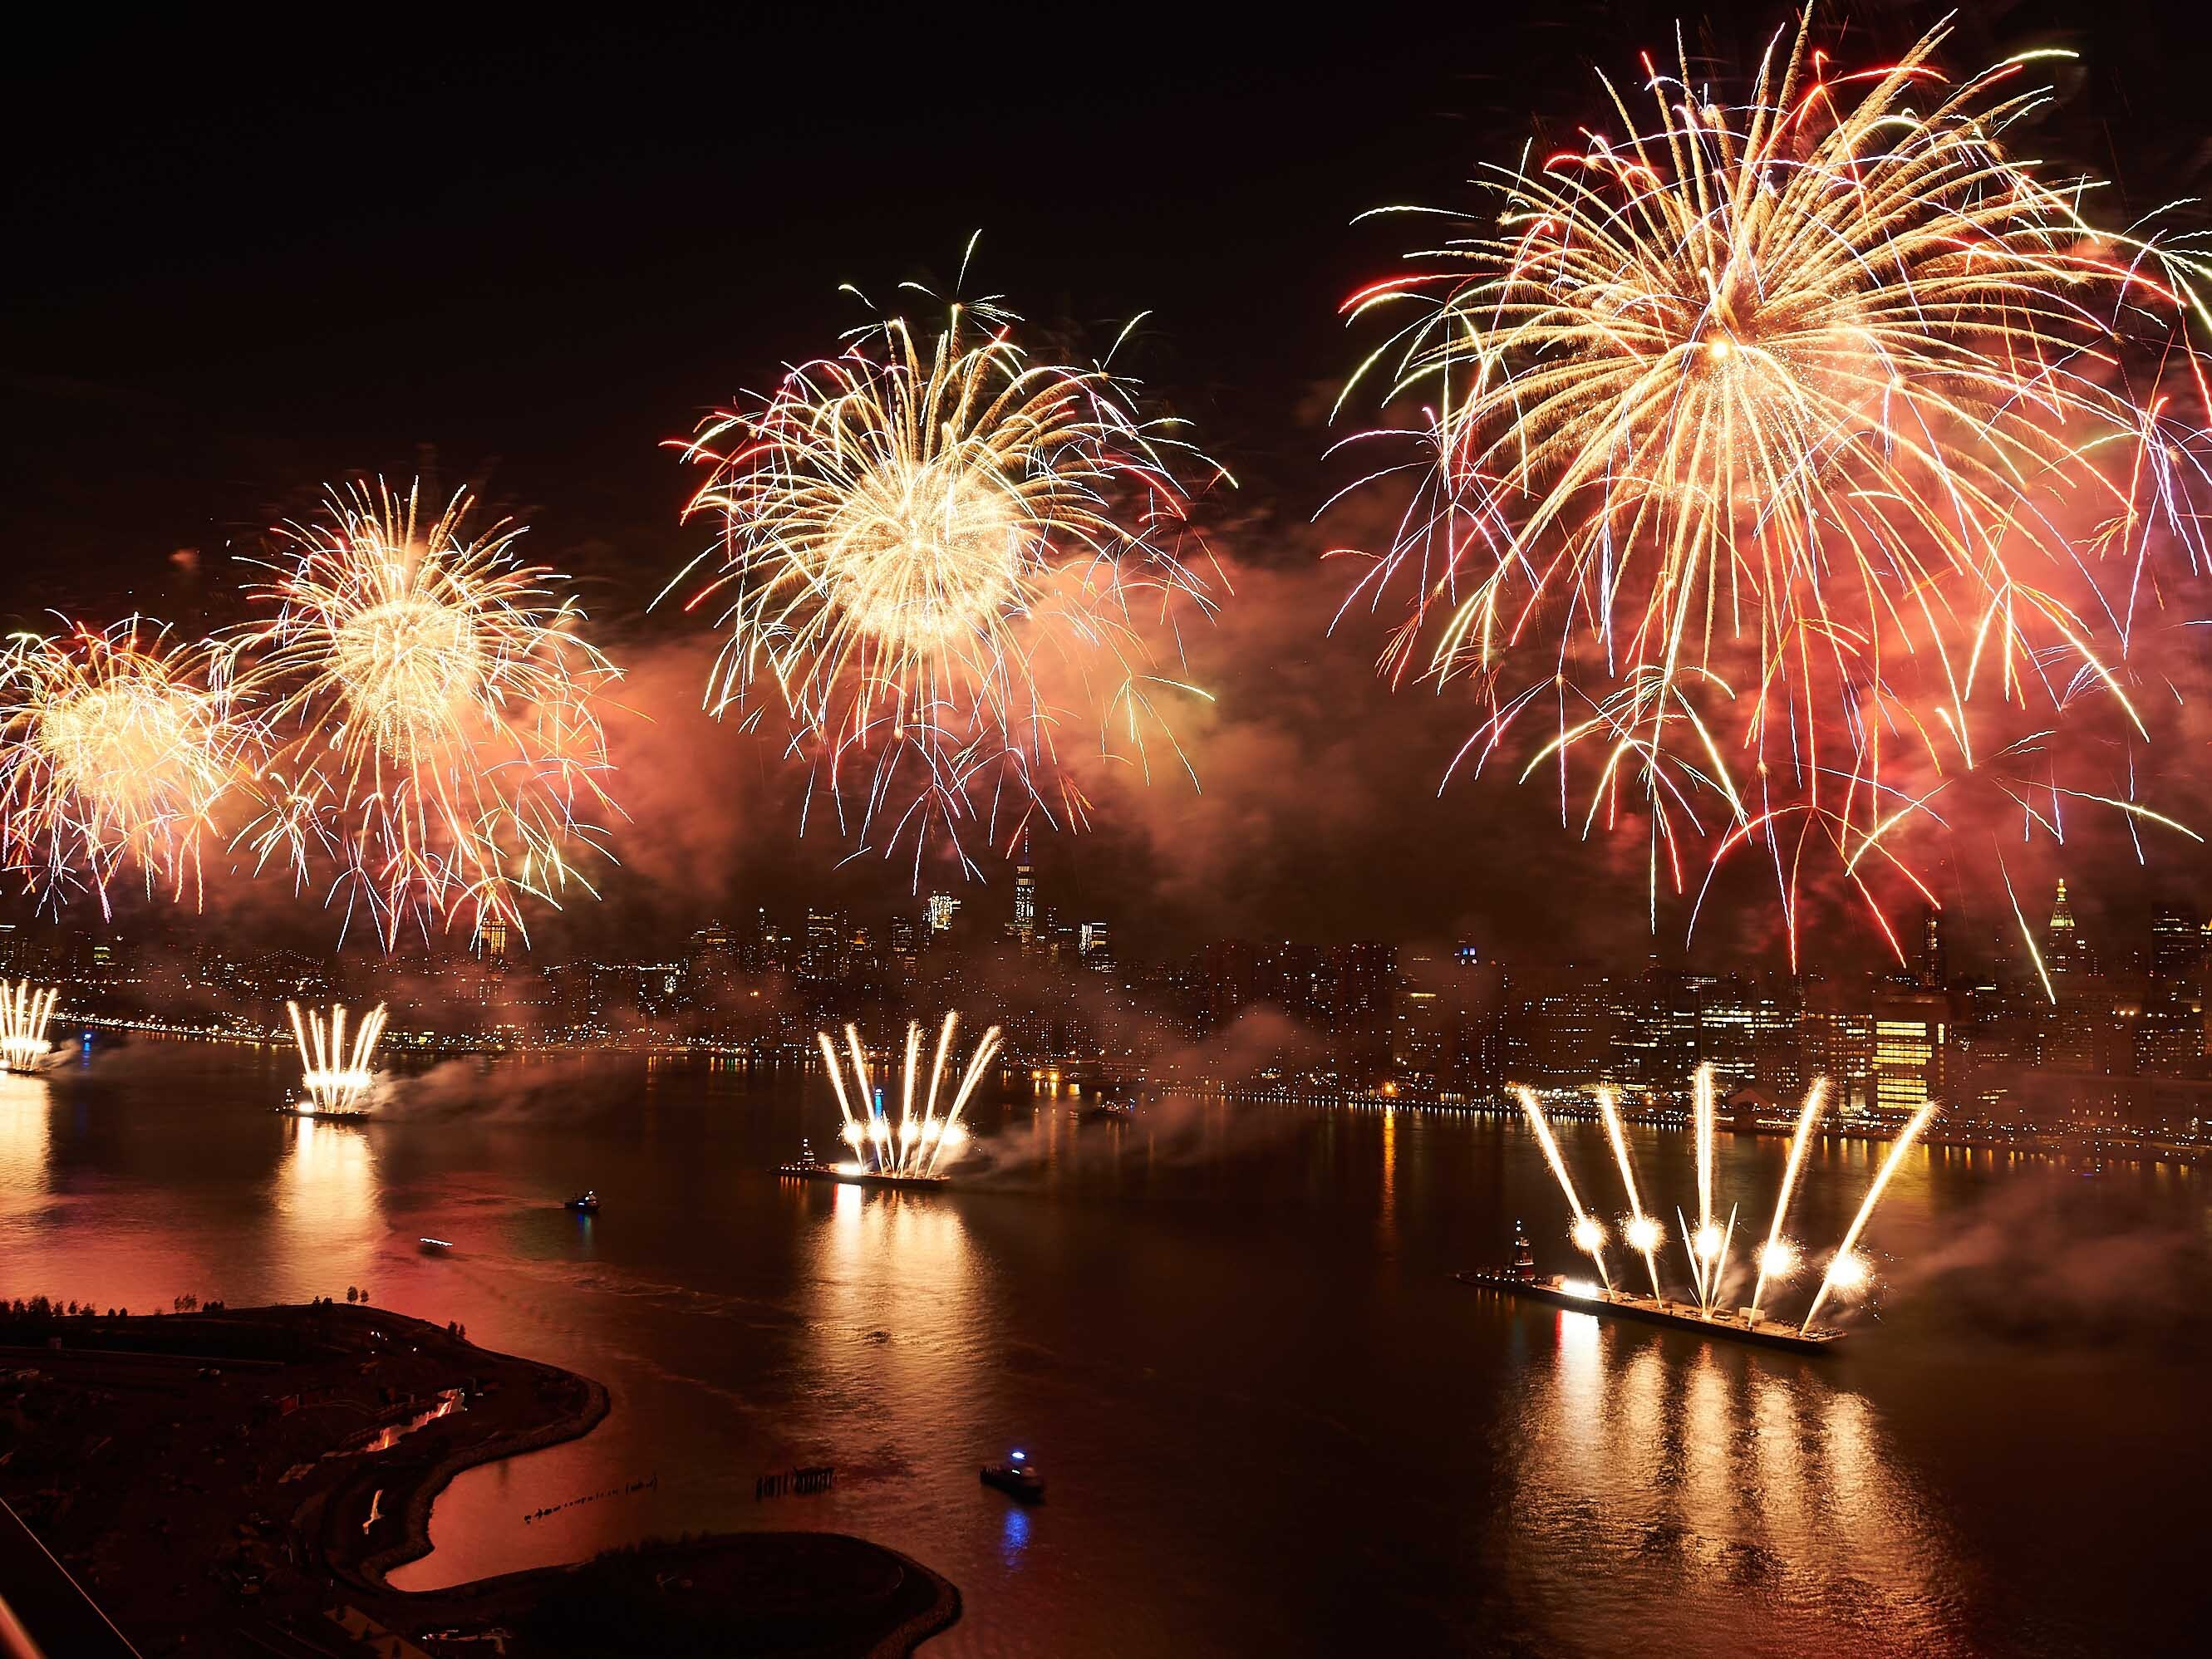 How to watch the 4th of July fireworks in NYC